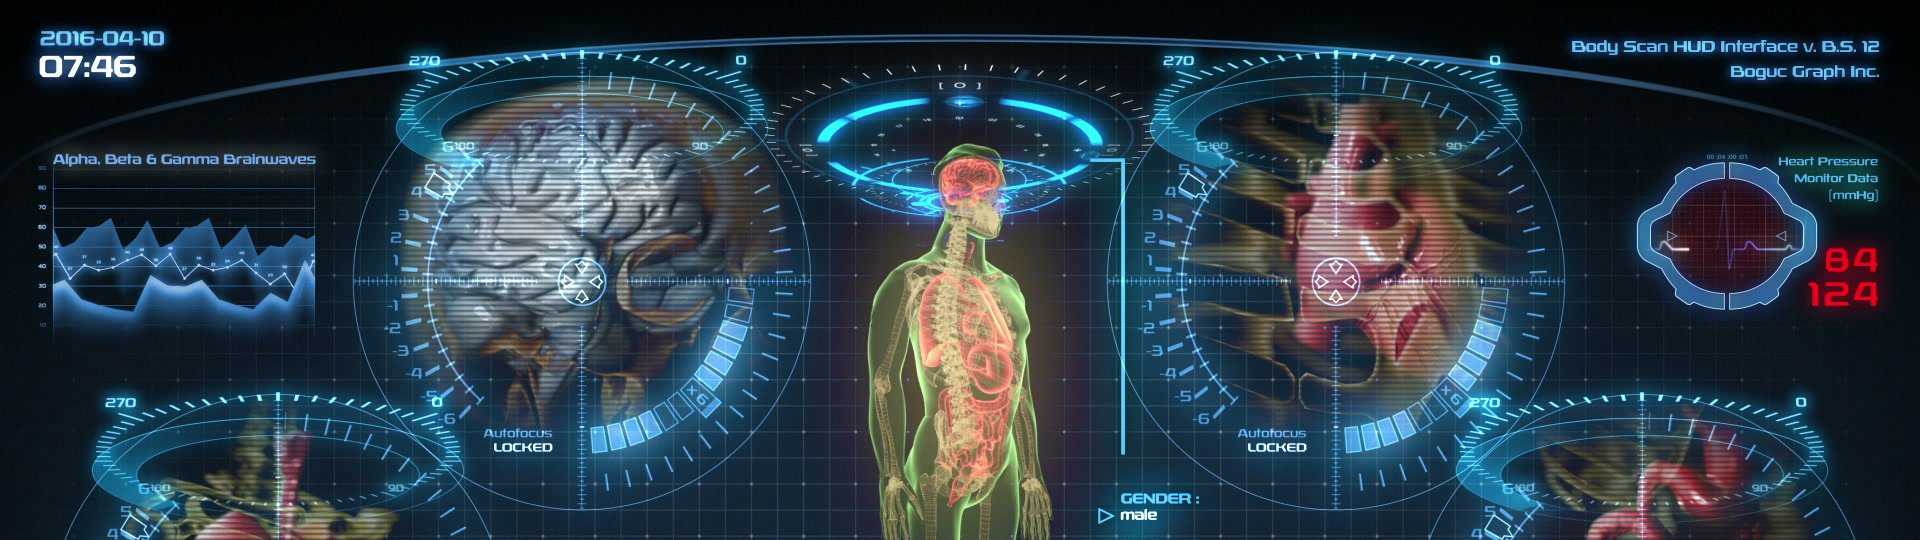 Futuristic human anatomy scan | Holographic medical application interface. Seamless loop.  - ID:18568